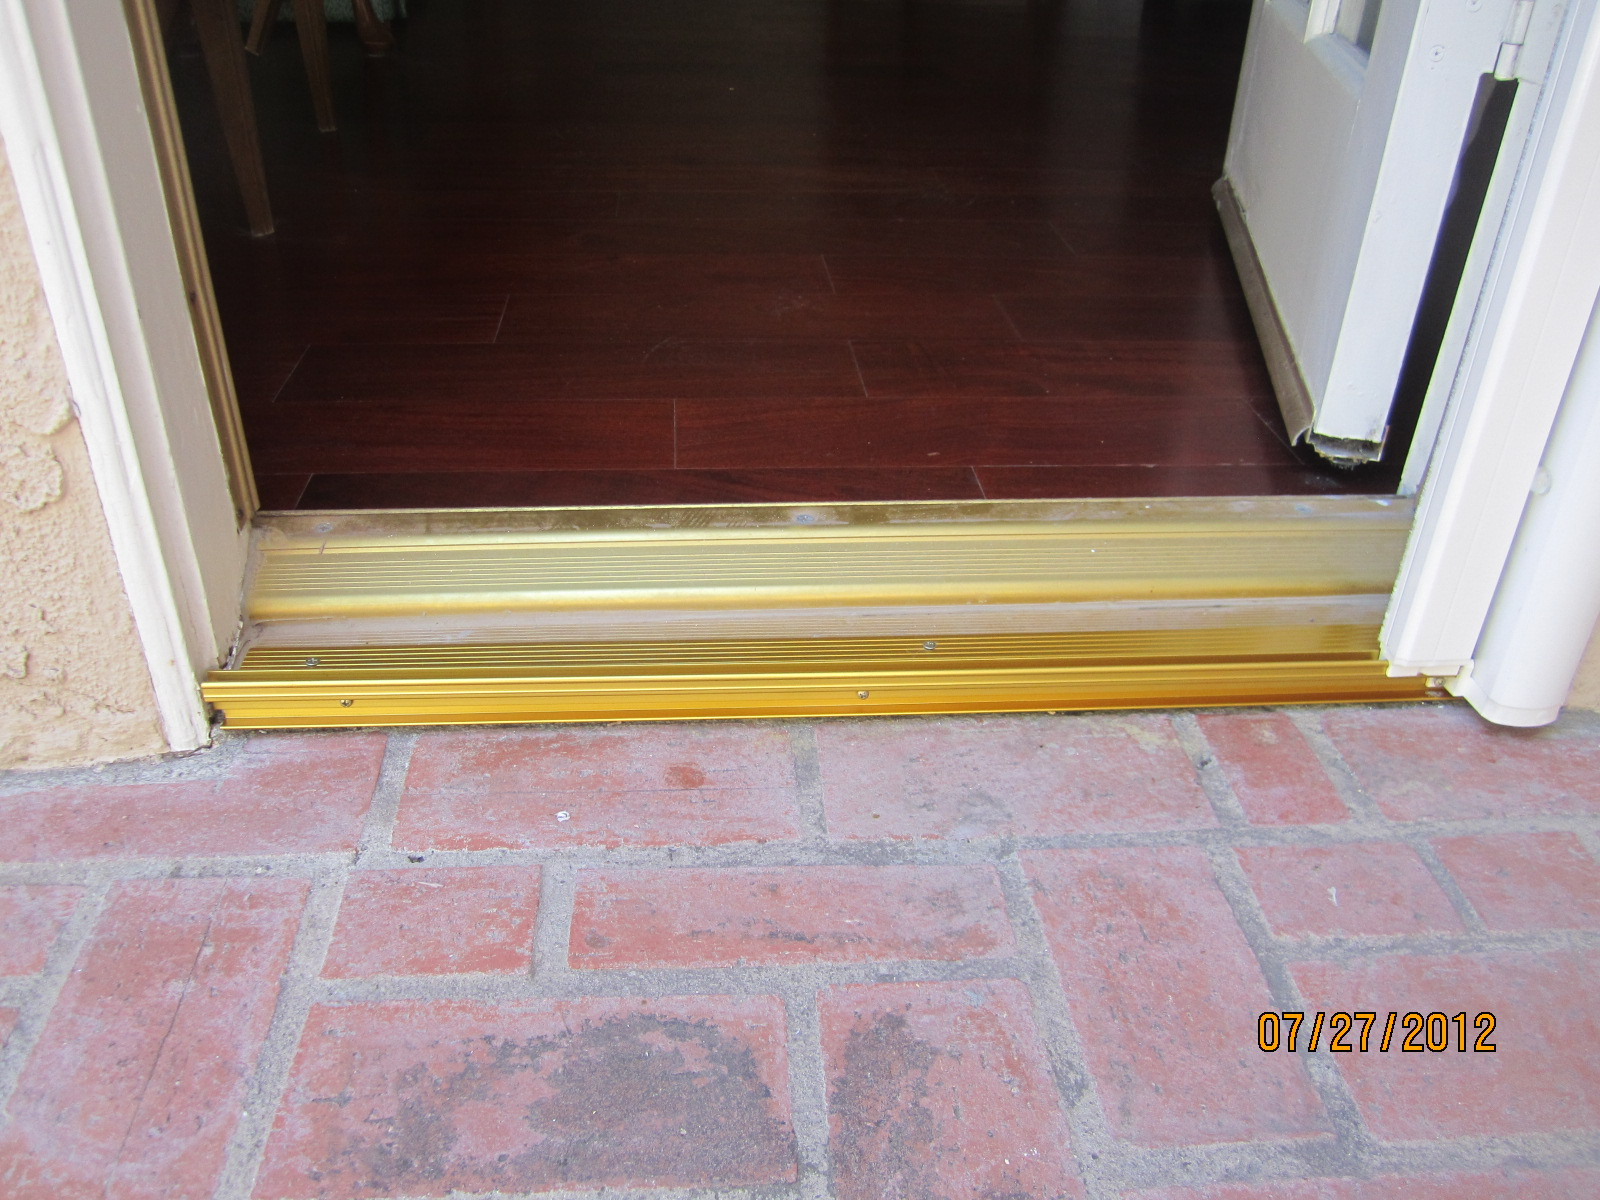 Single Swinging Door Threshold After Installation In